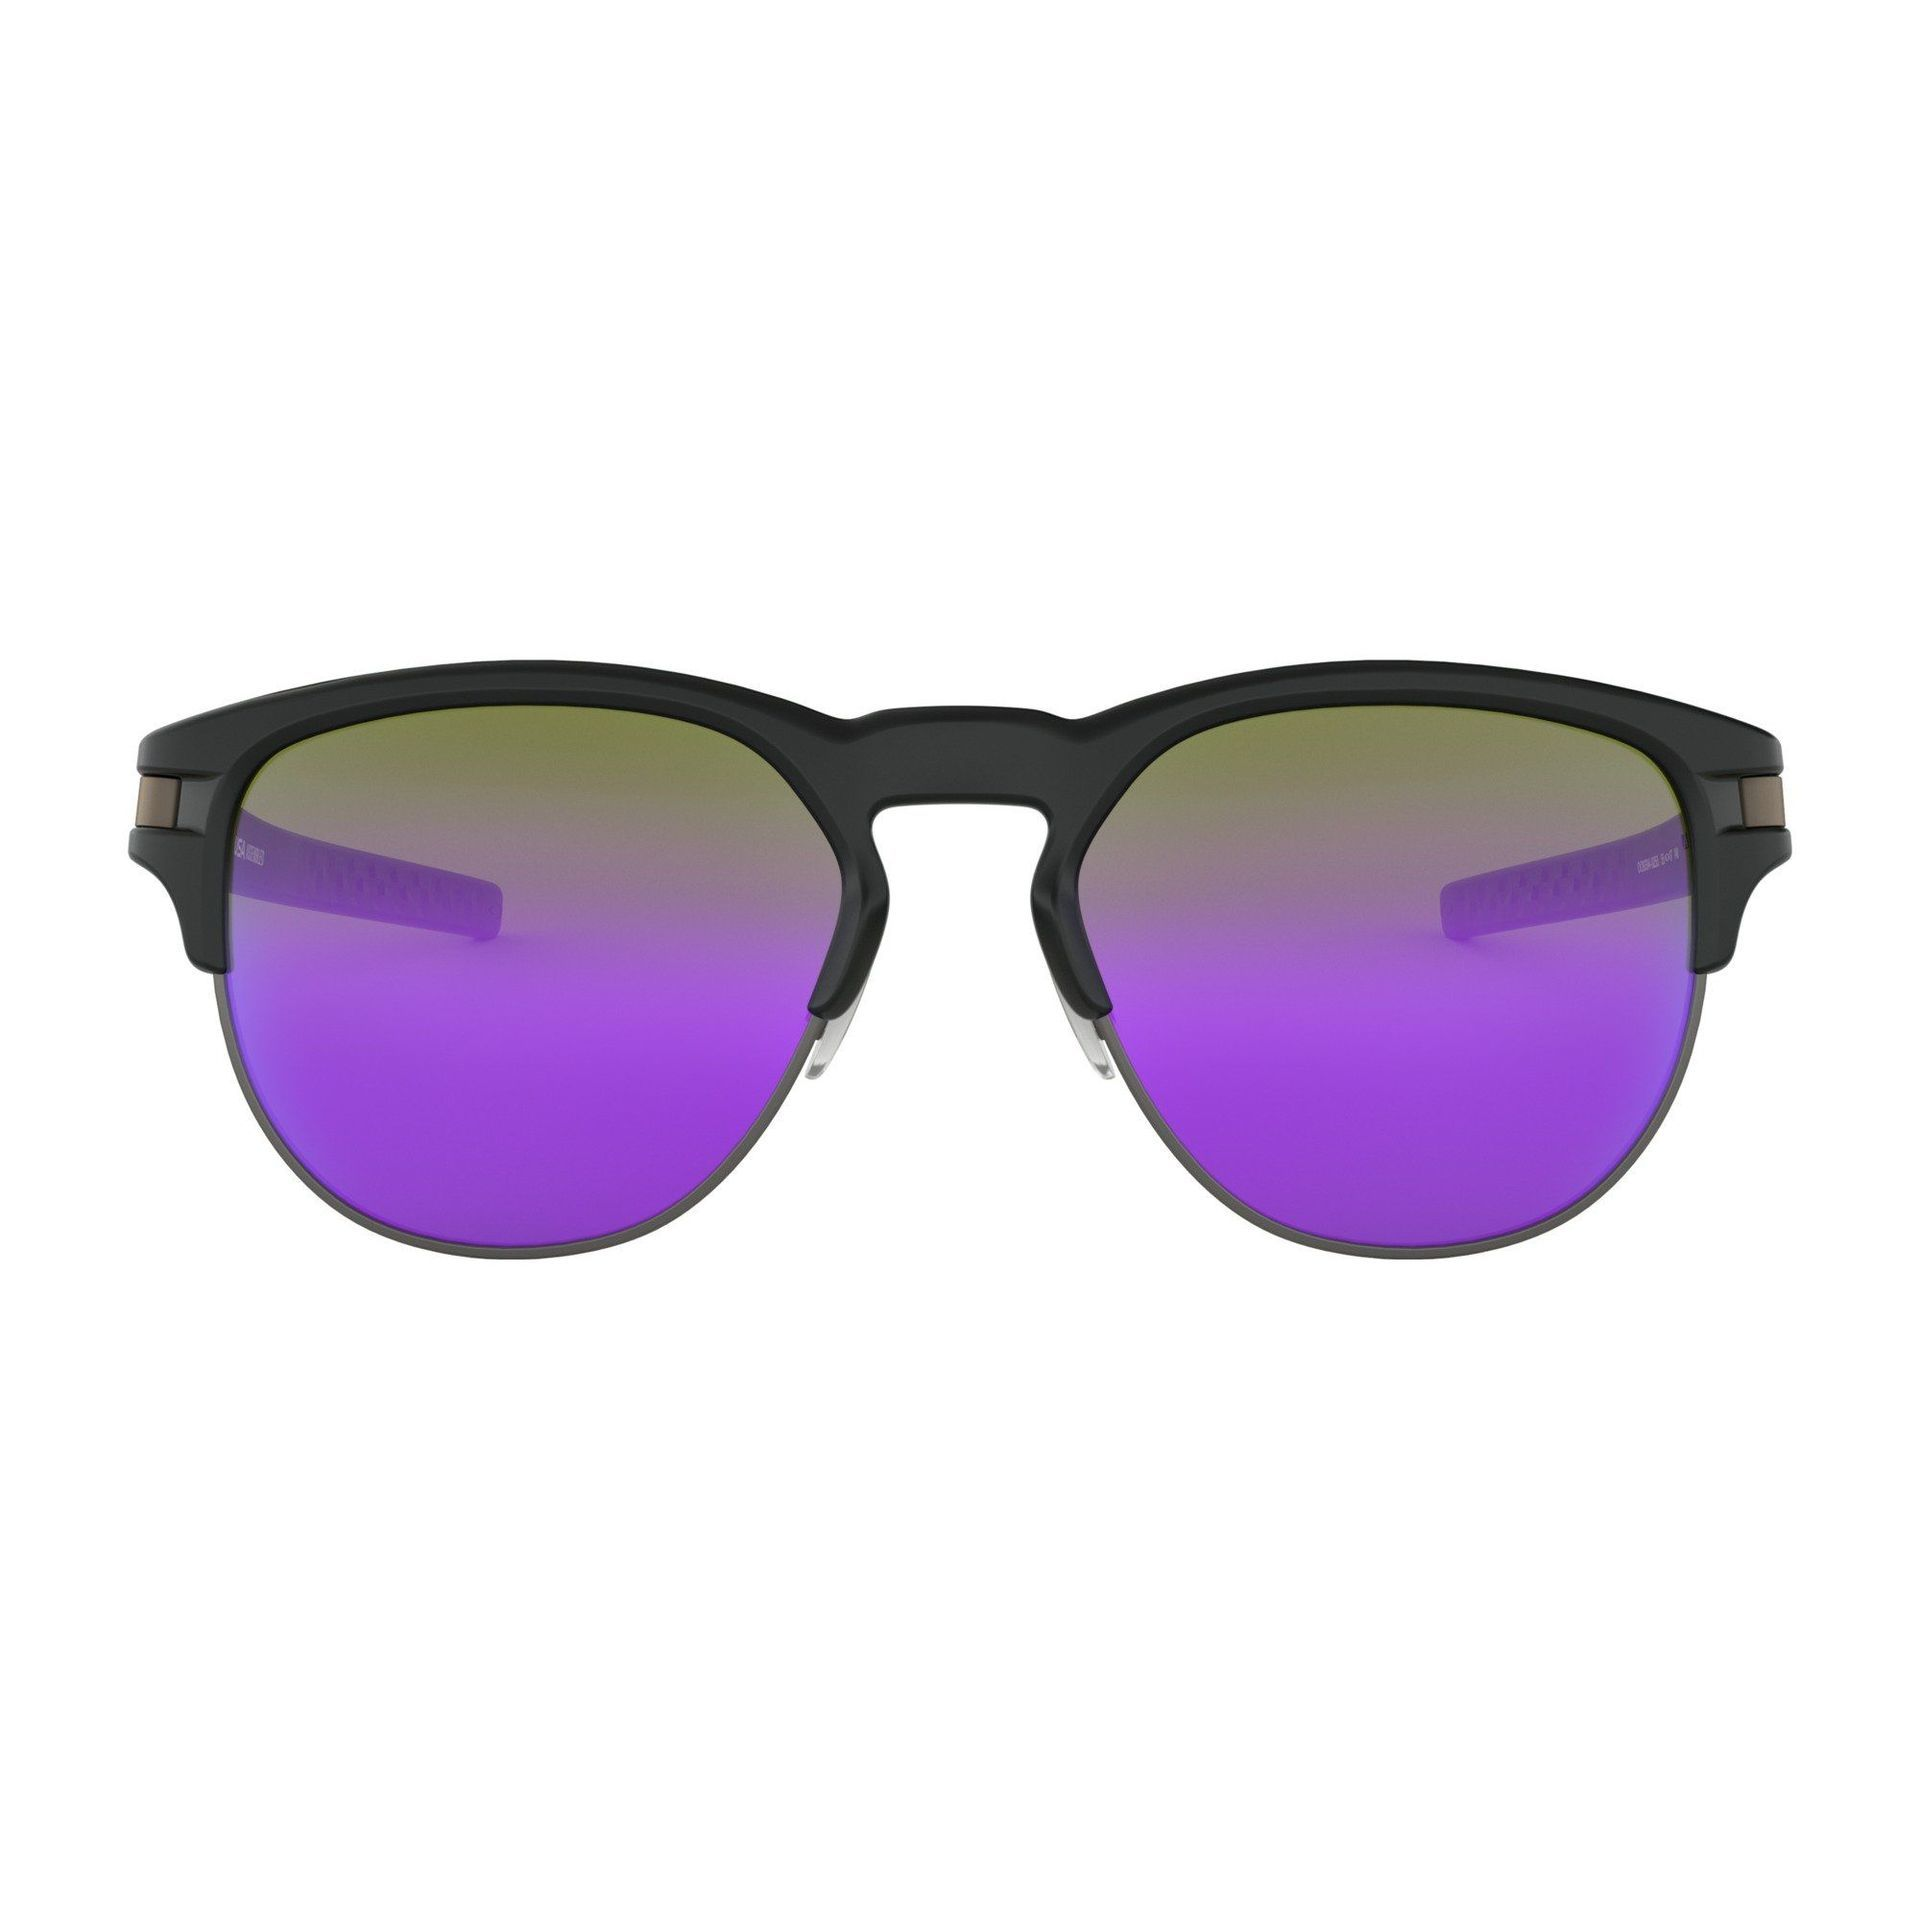 OKULARY OAKLEY LATCH KEY MATTE BLACK|VIOLET IRIDIUM 2